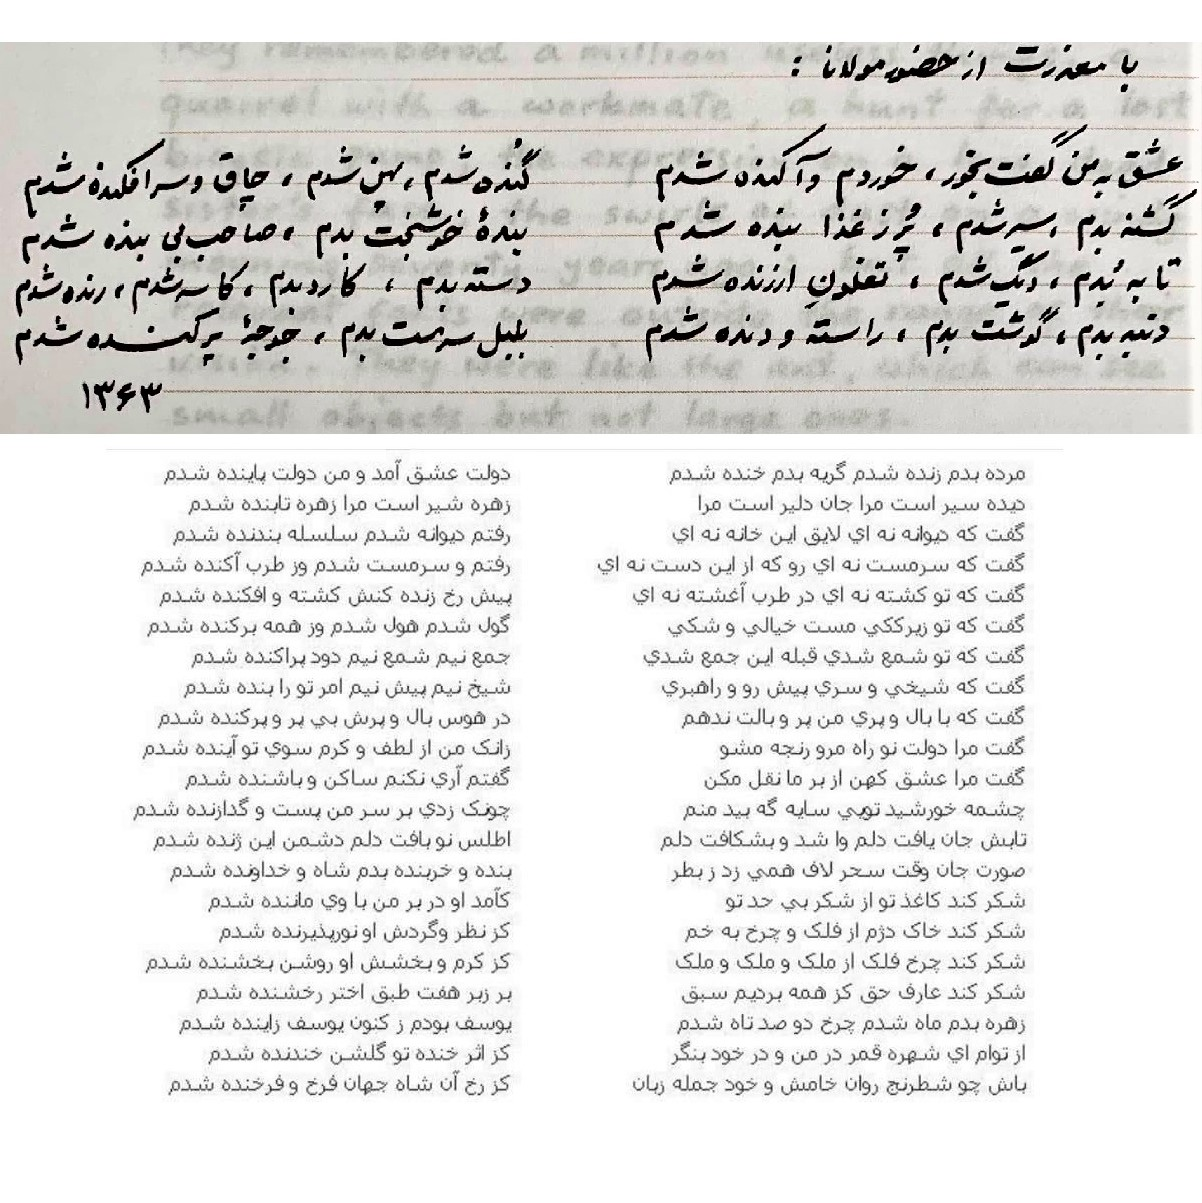 Joking around with Mowlavi (Rumi): I wrote these verses in 1984, inspired by the Mowlavi poem that follows it